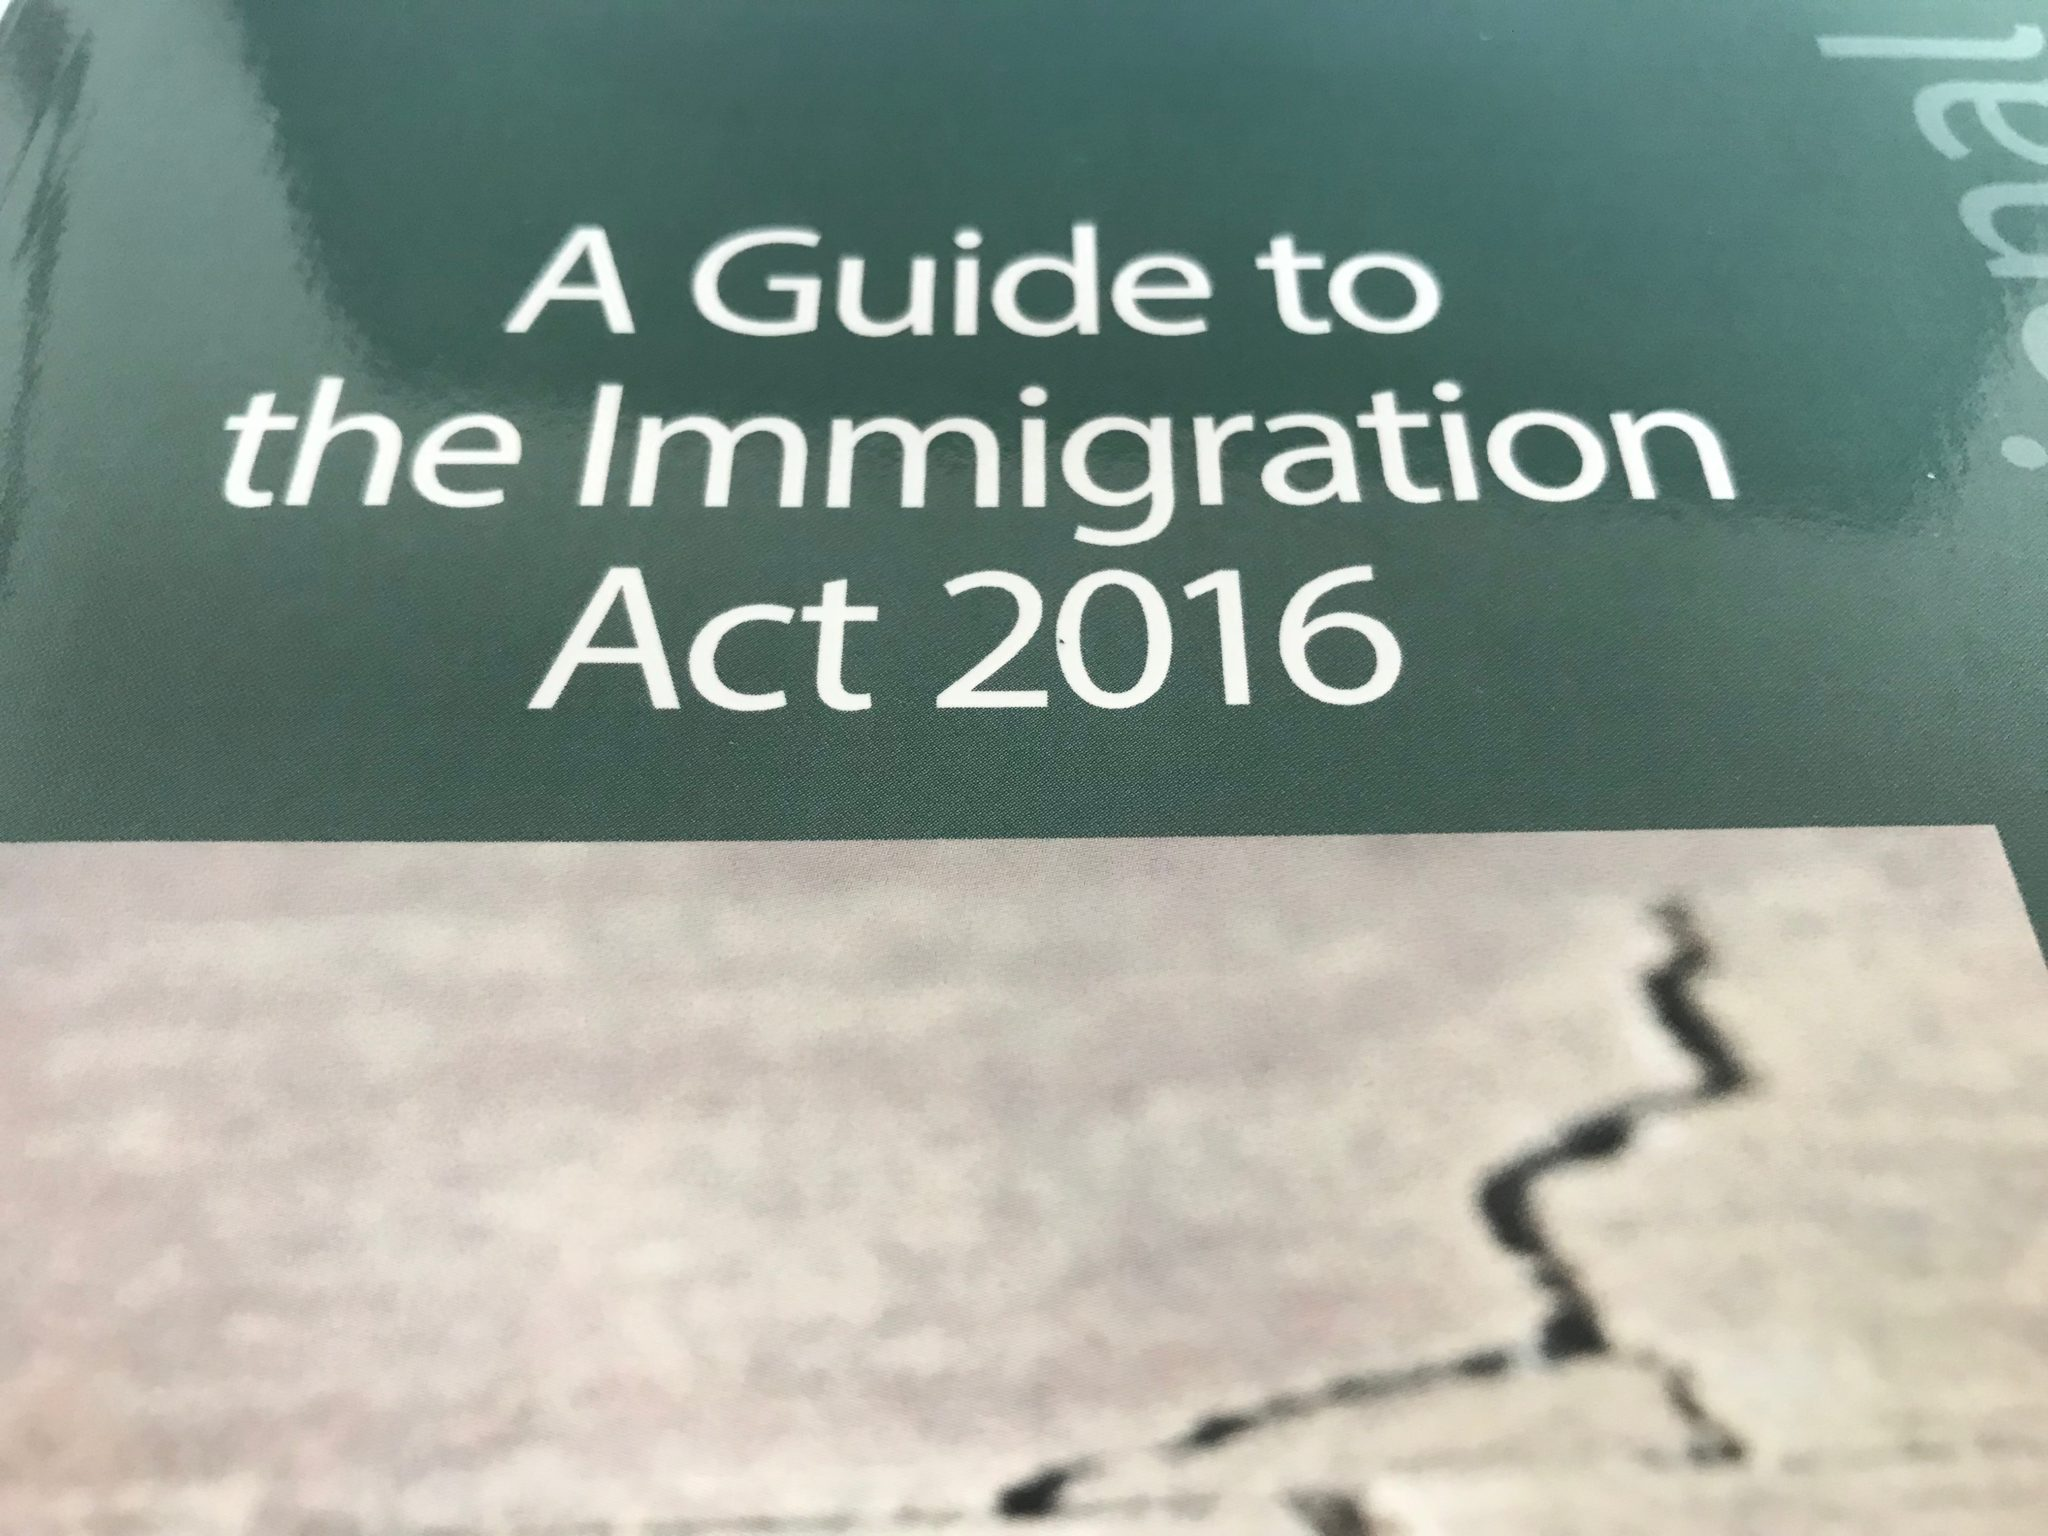 Book review: A Guide to the Immigration Act 2016 by Alison Harvey and Zoe Harper